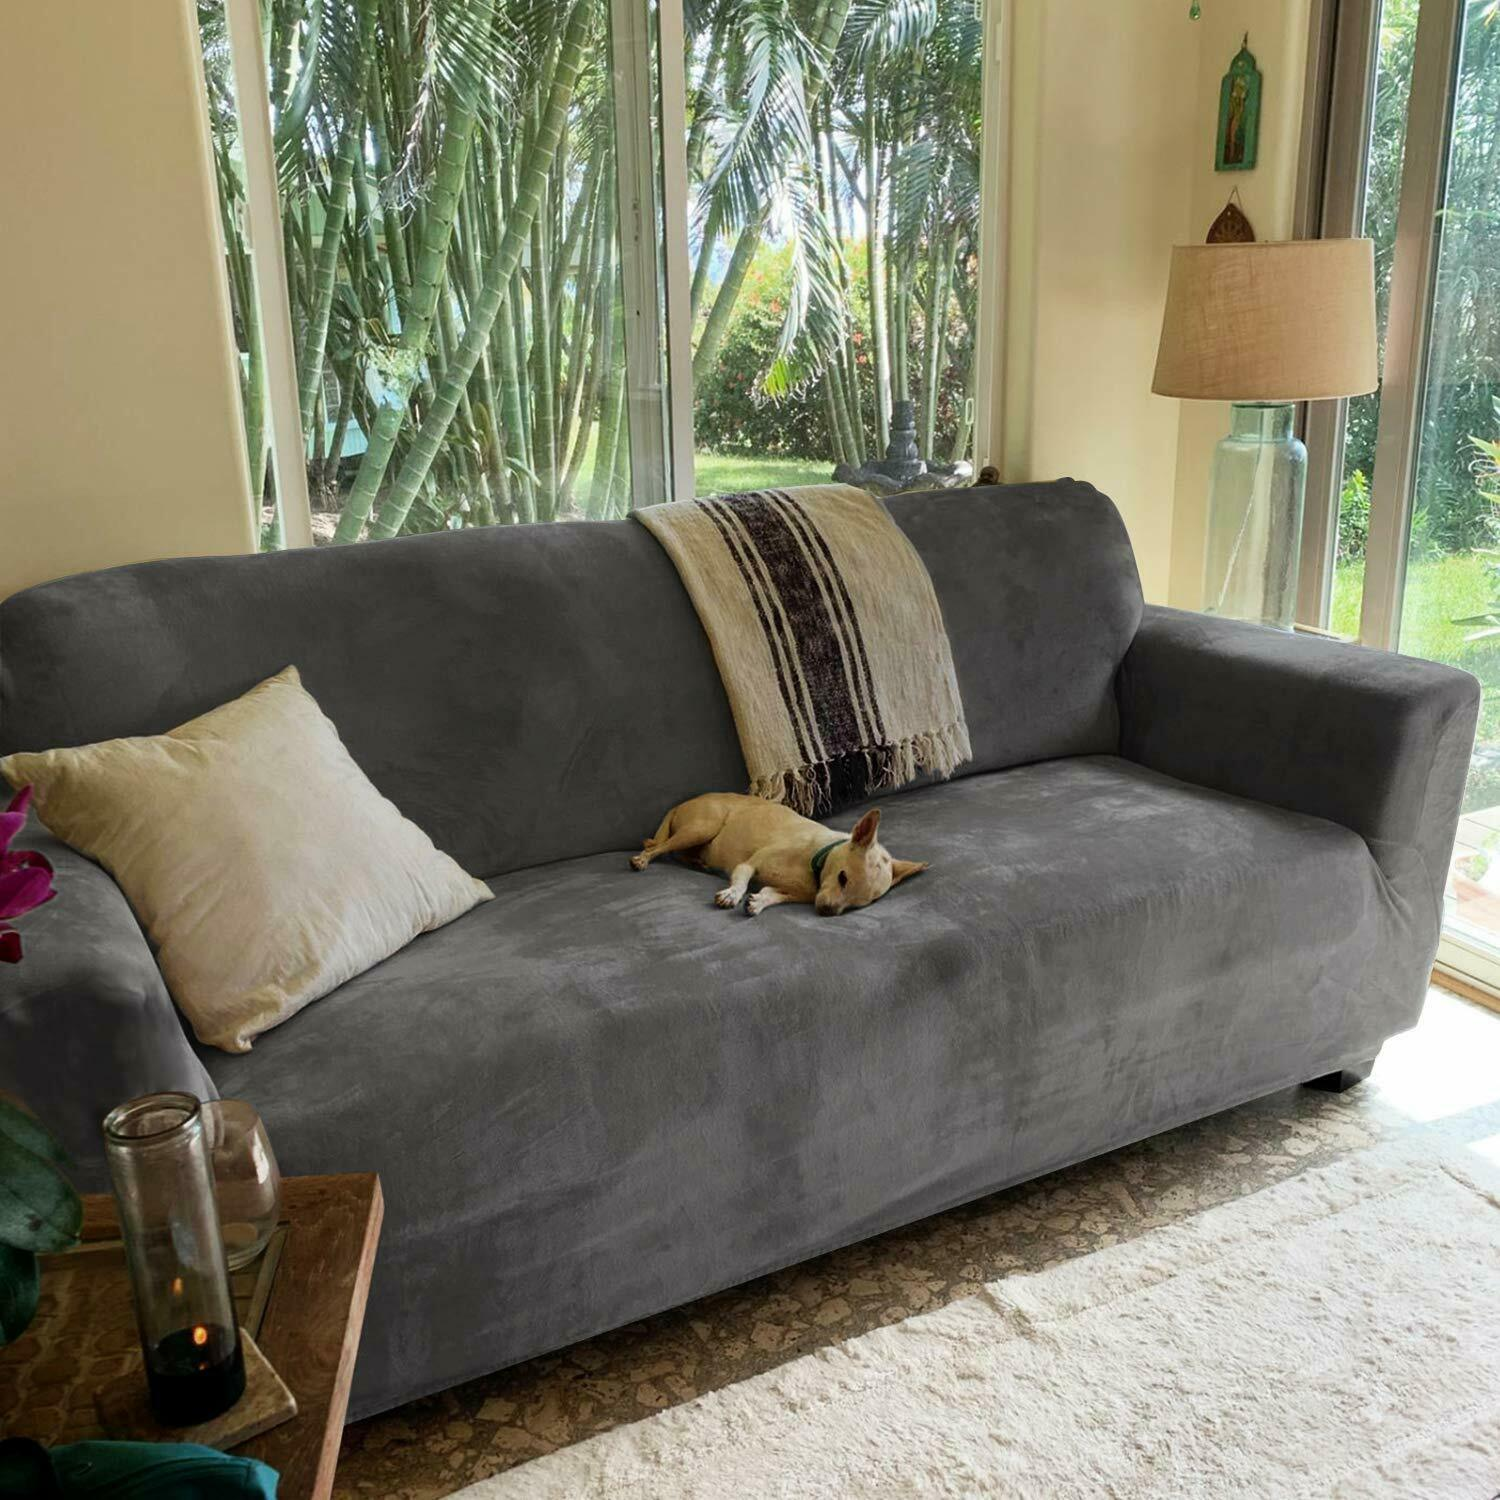 Stretch Sofa Slip Cover T And Box Cushion Couch Covers For Loveseat Gray For Sale Online Ebay